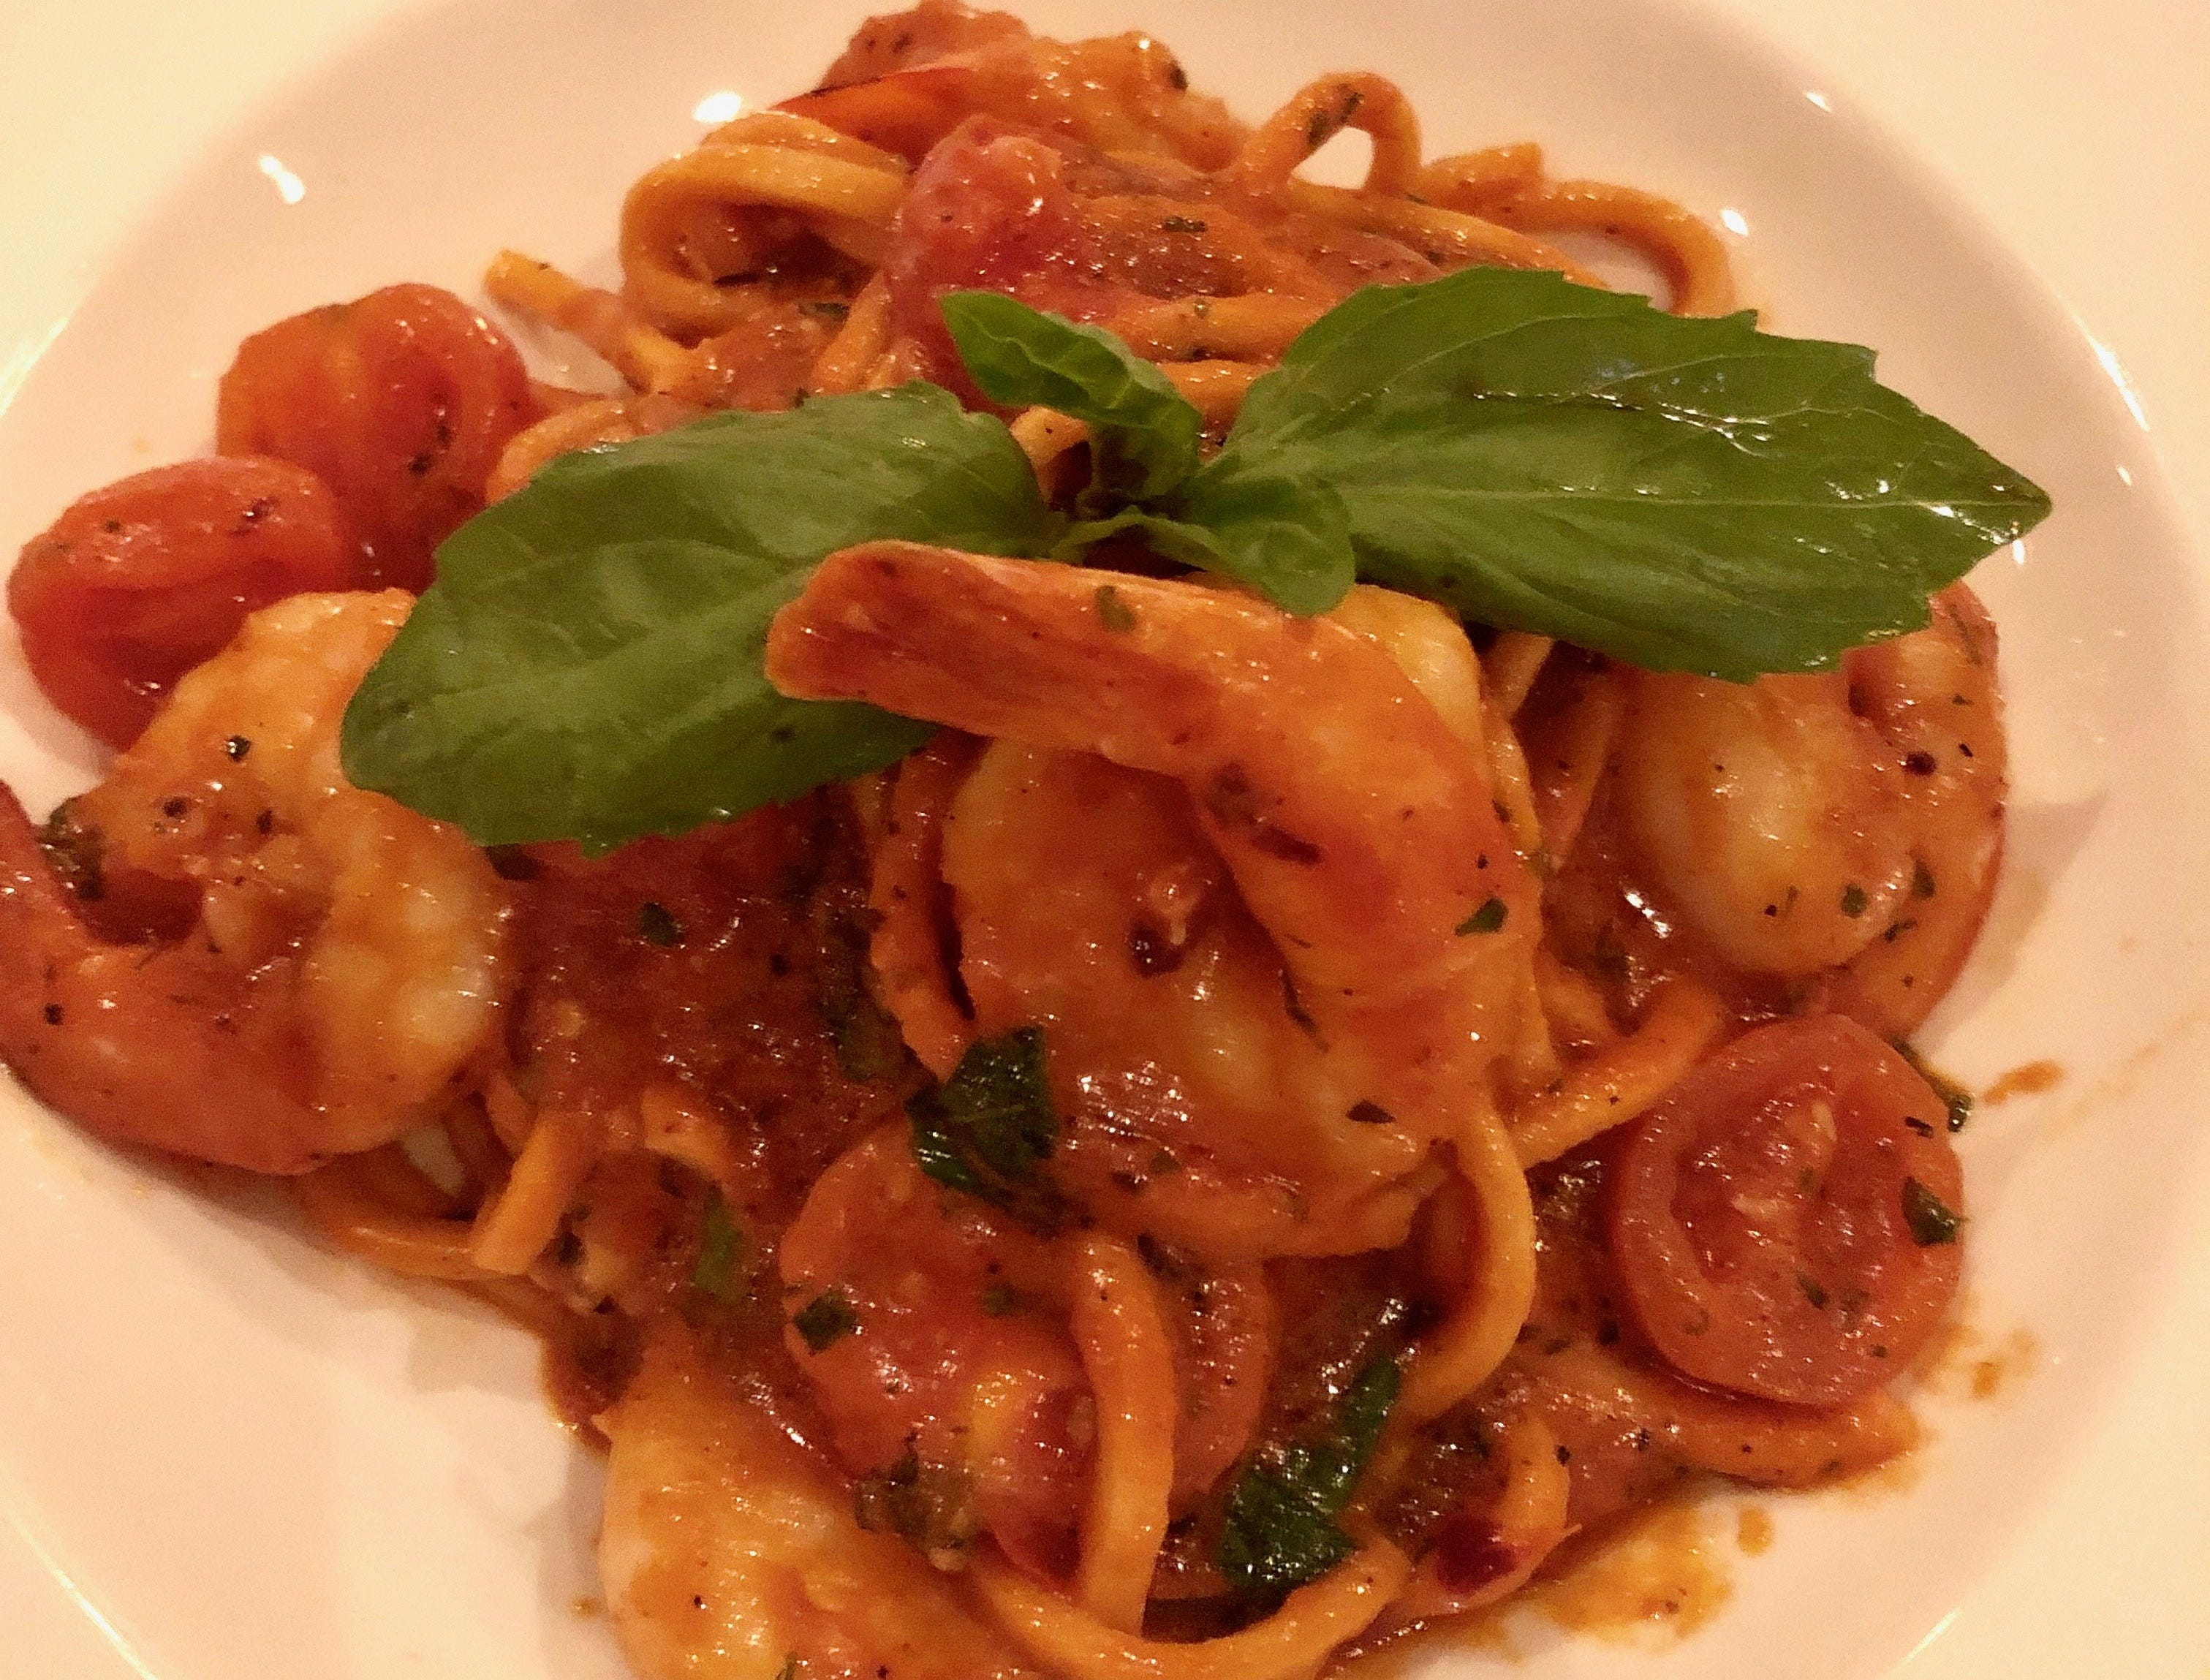 A spicy spaghetti studded with tomatoes and shrimp was on special recently at La Trattoria in downtown Naples.